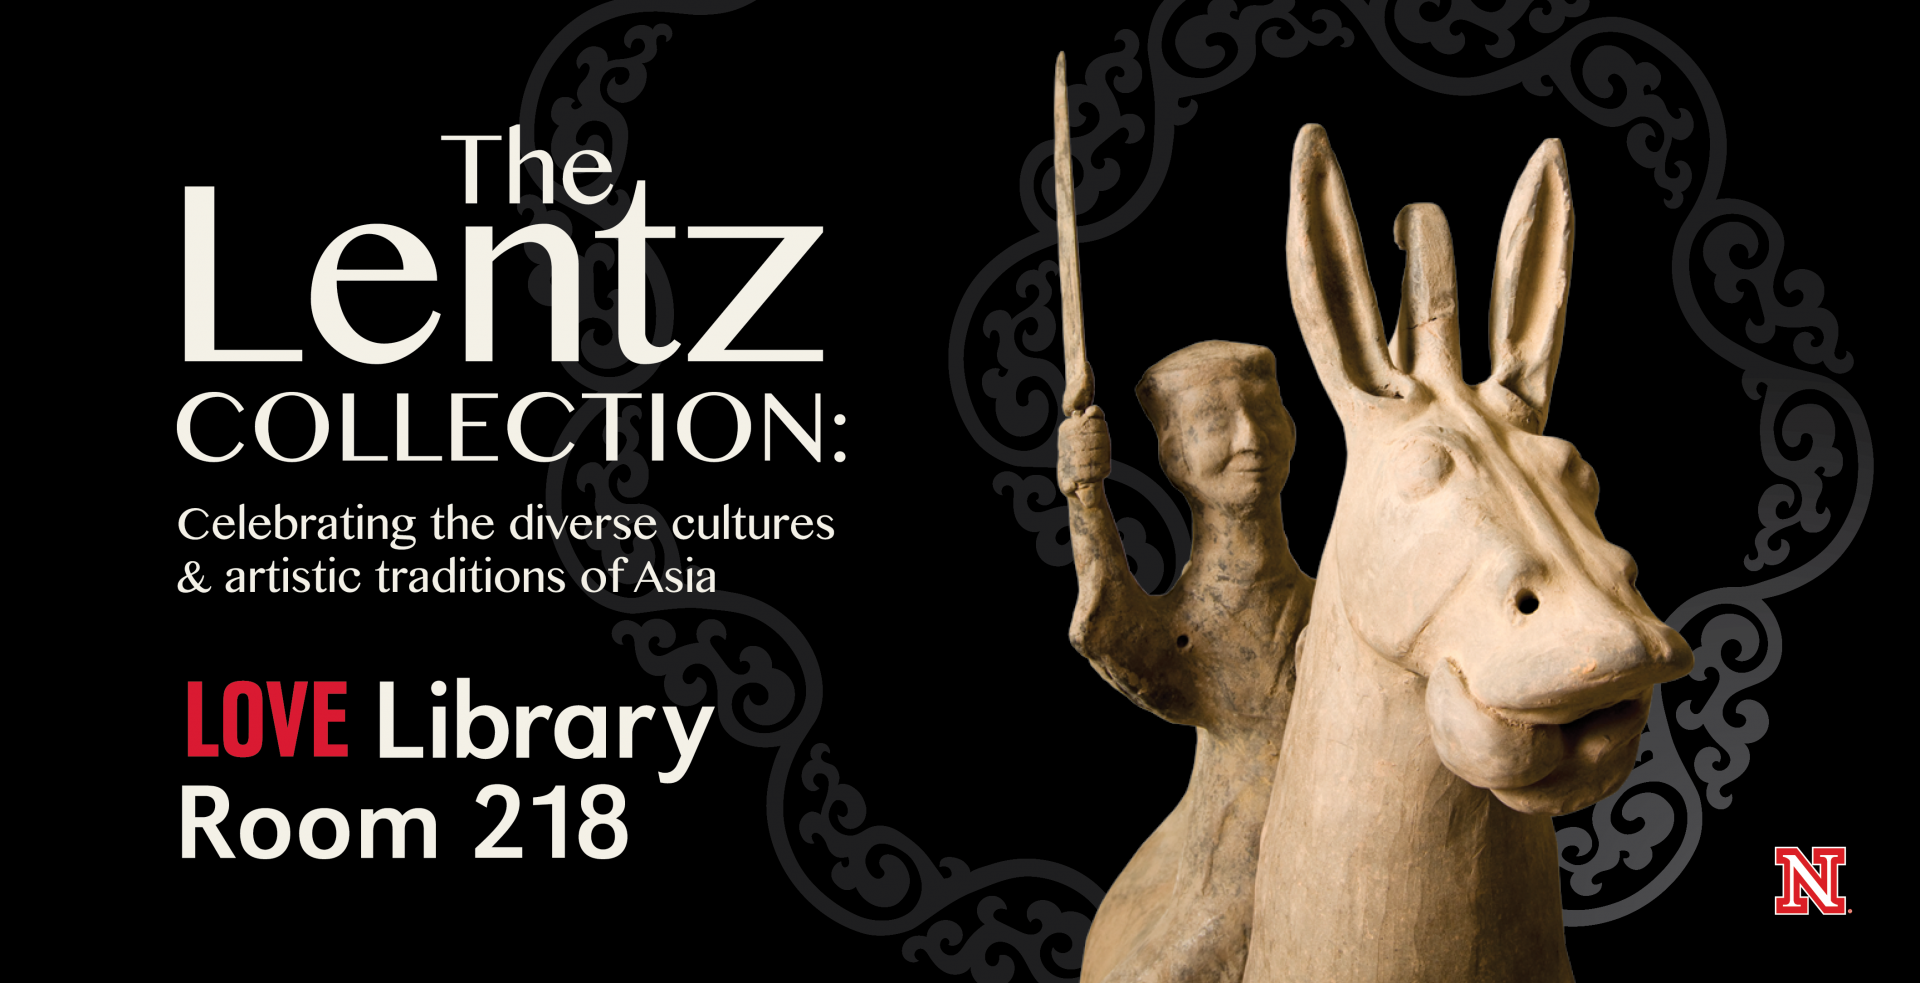 The Lentz Collection at Love Library